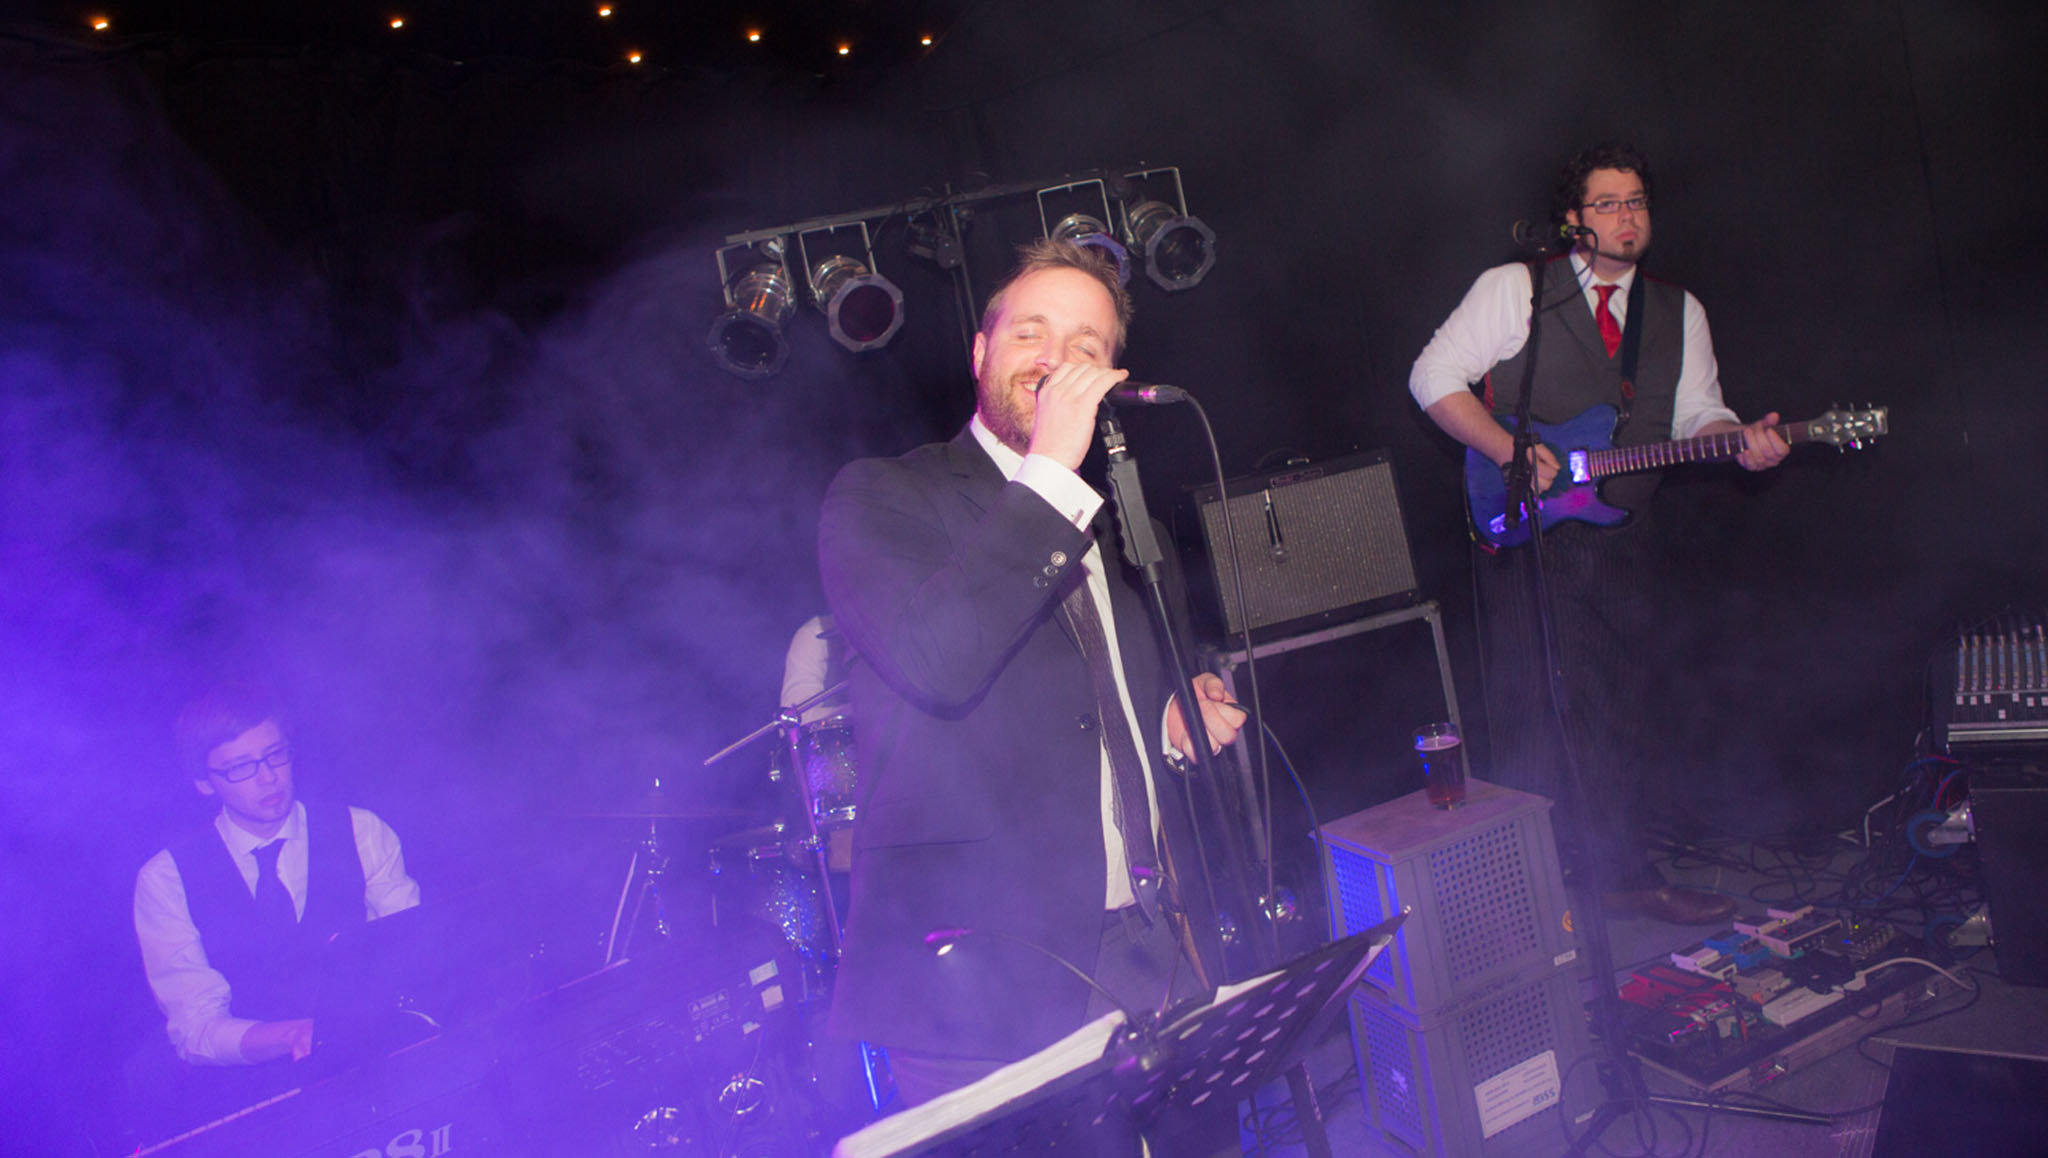 Live band performing at a 40th birthday party in Alderley Edge, Cheshire